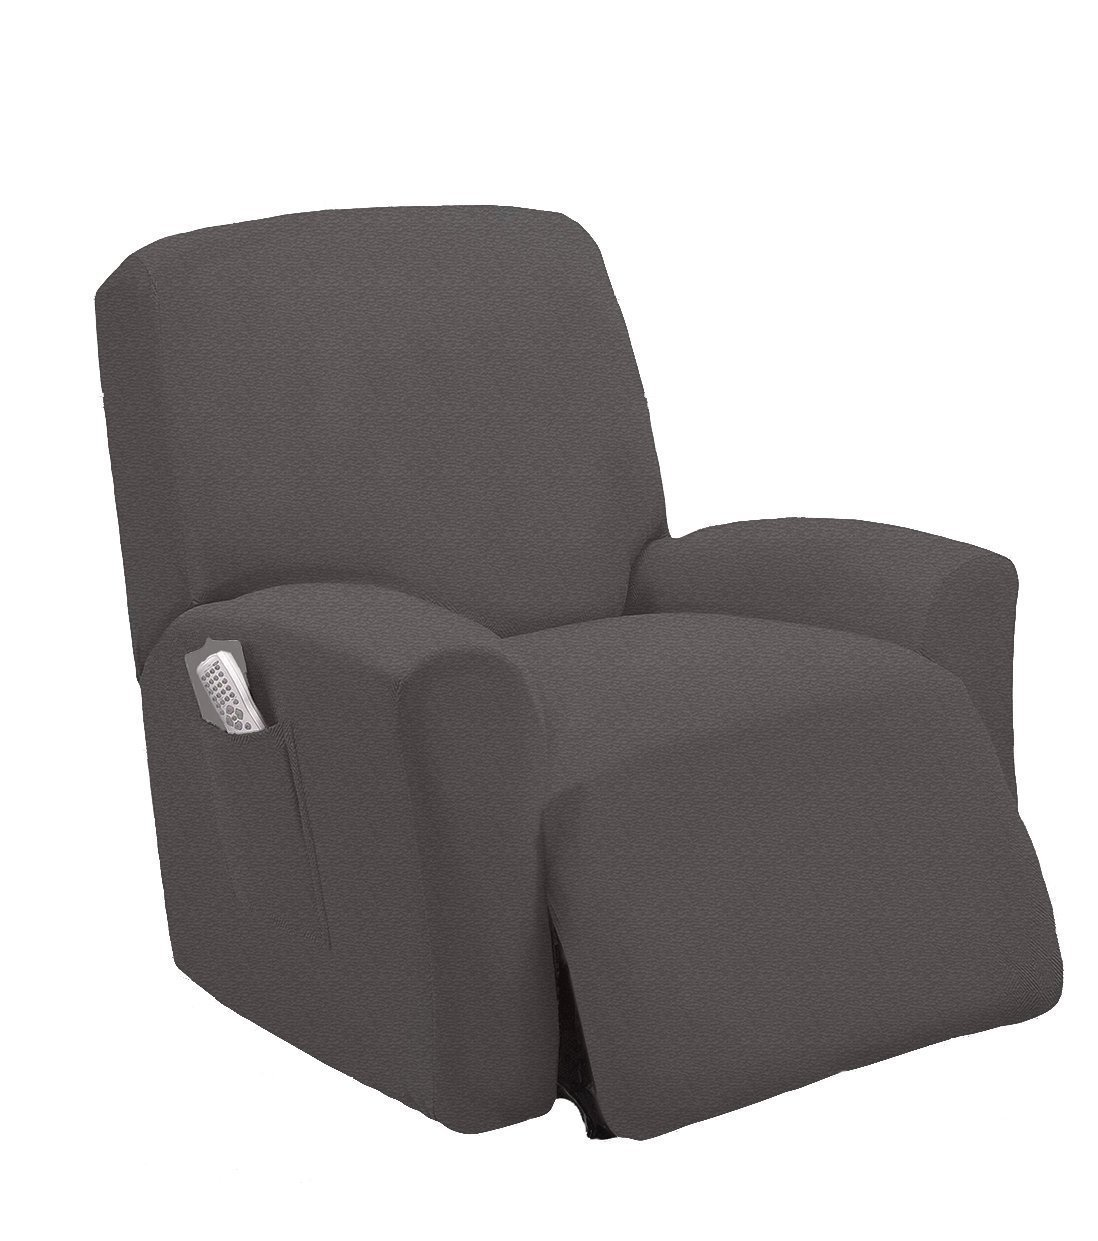 Elegant Home One piece Stretch Sterling Recliner Chair Cover Furniture Slipcovers with Remote Pocket Fit most Recliner Chairs # Stella (Light Grey)